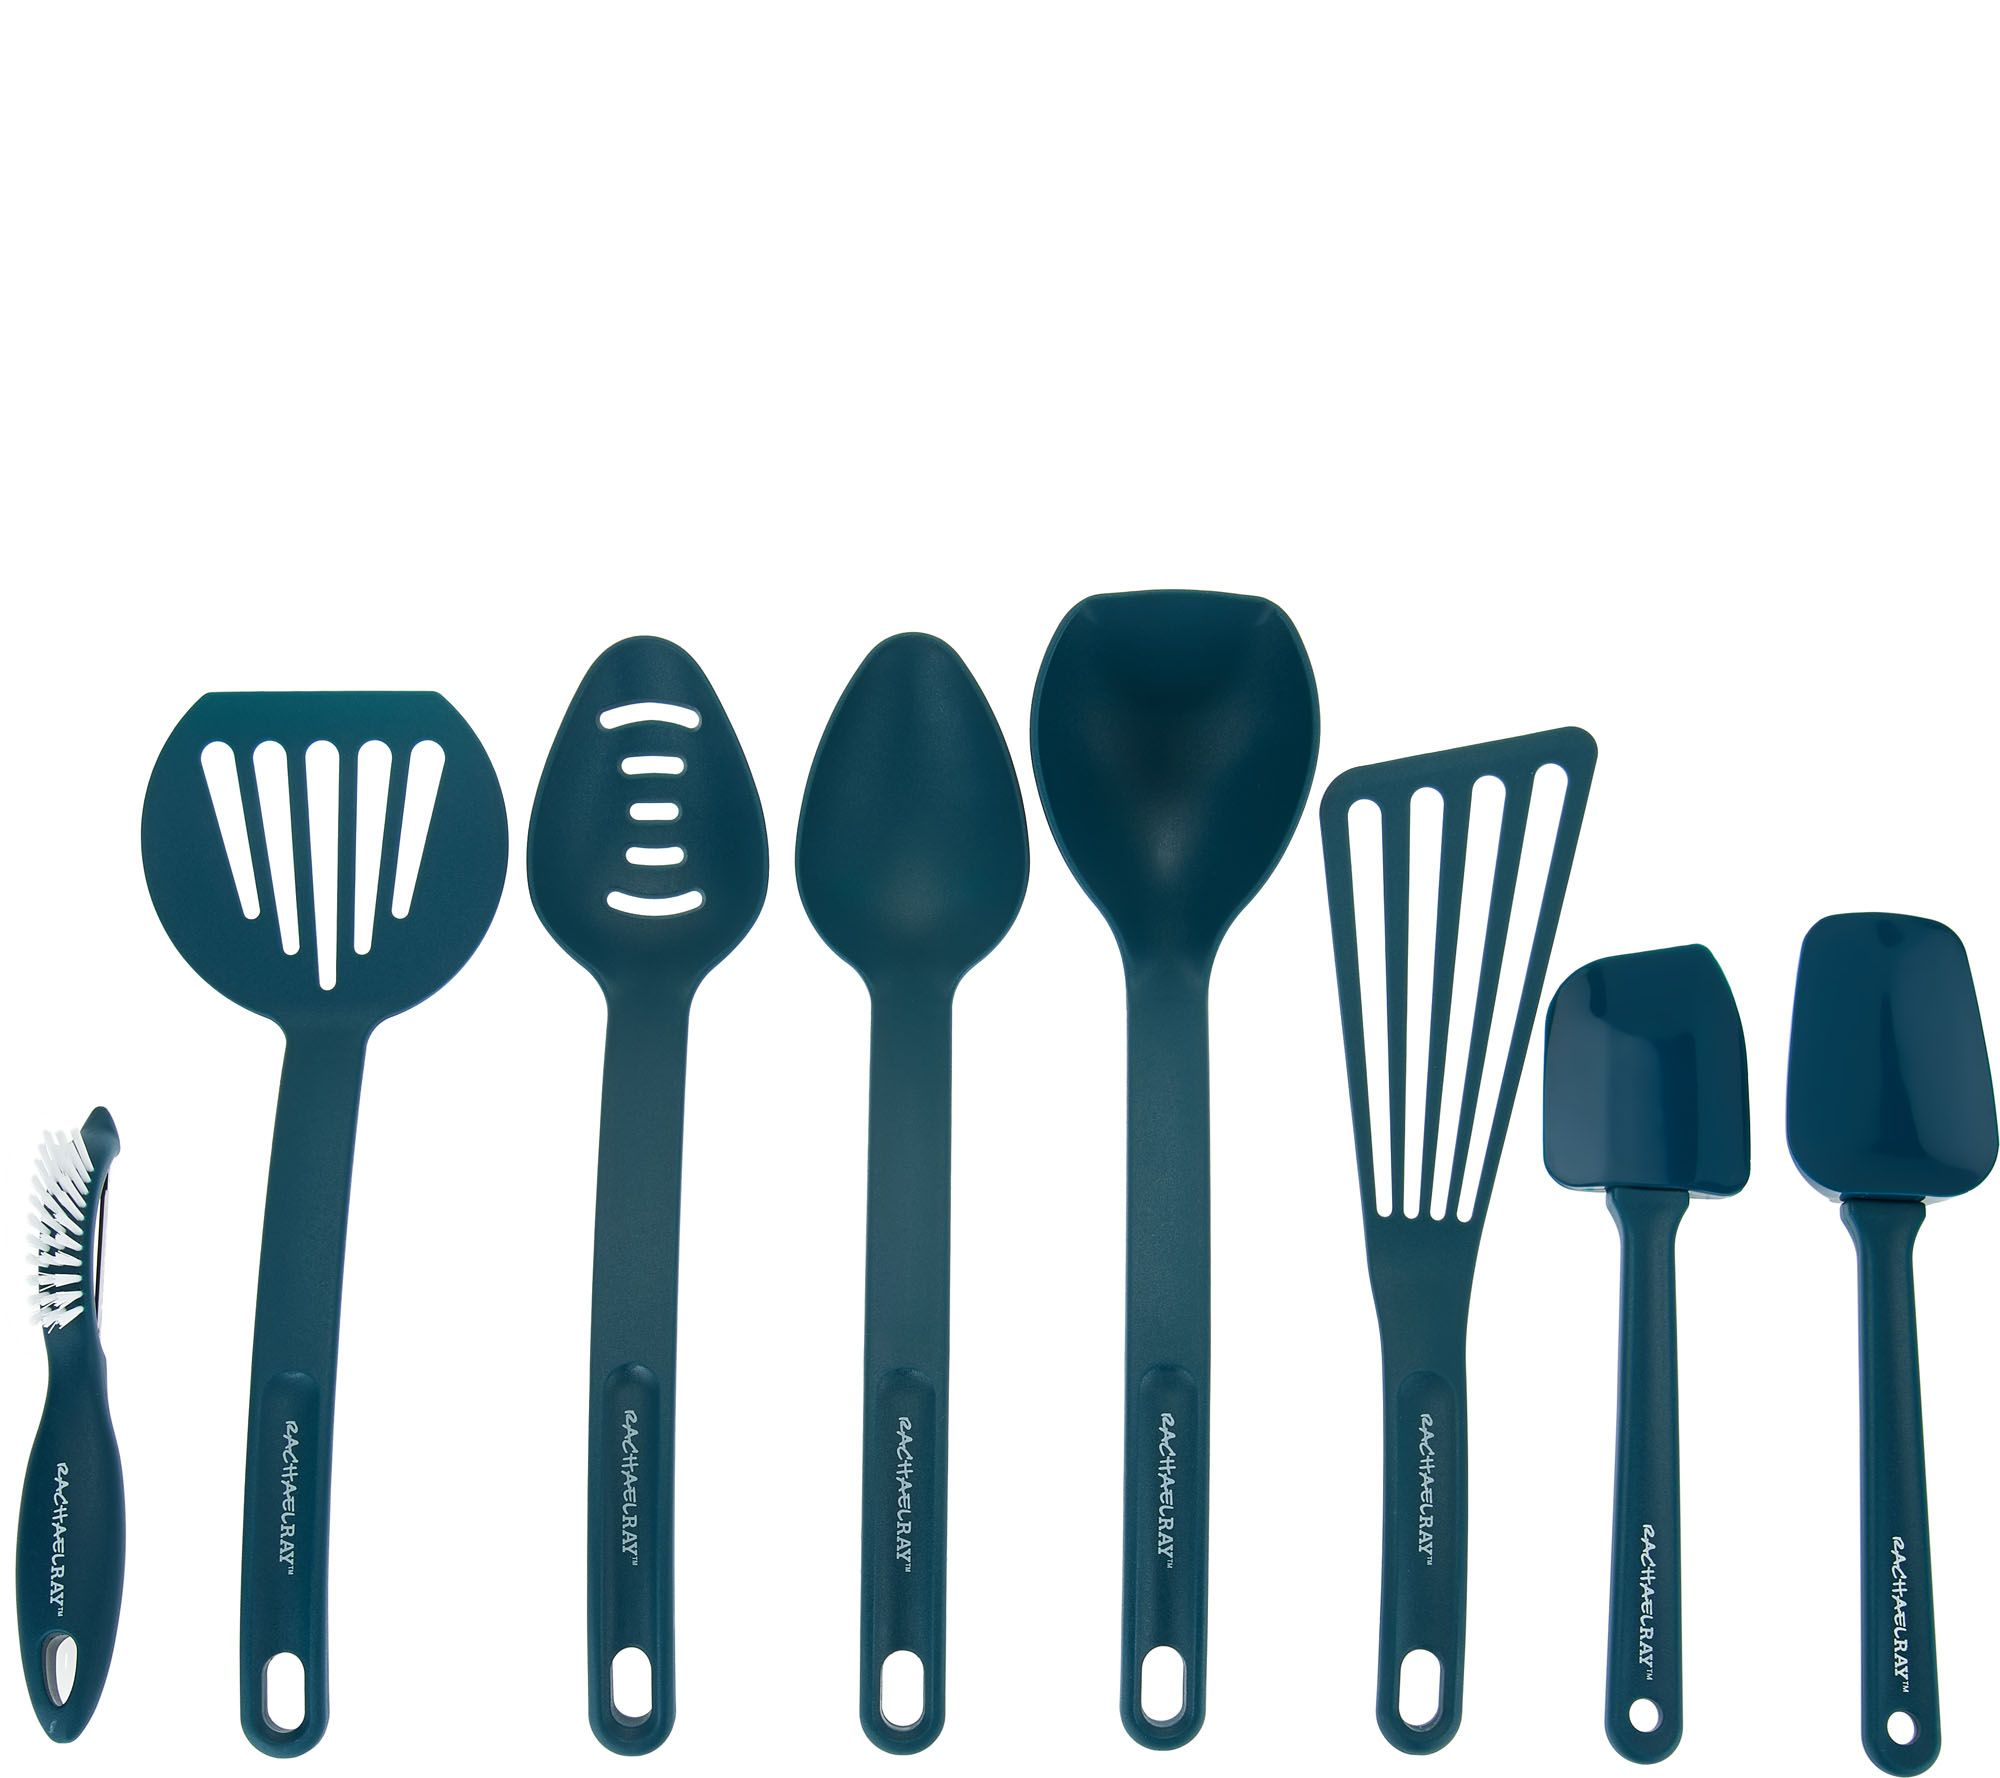 Rachael Ray 8-Piece Must Have Kitchen Tools - Page 1 — QVC.com